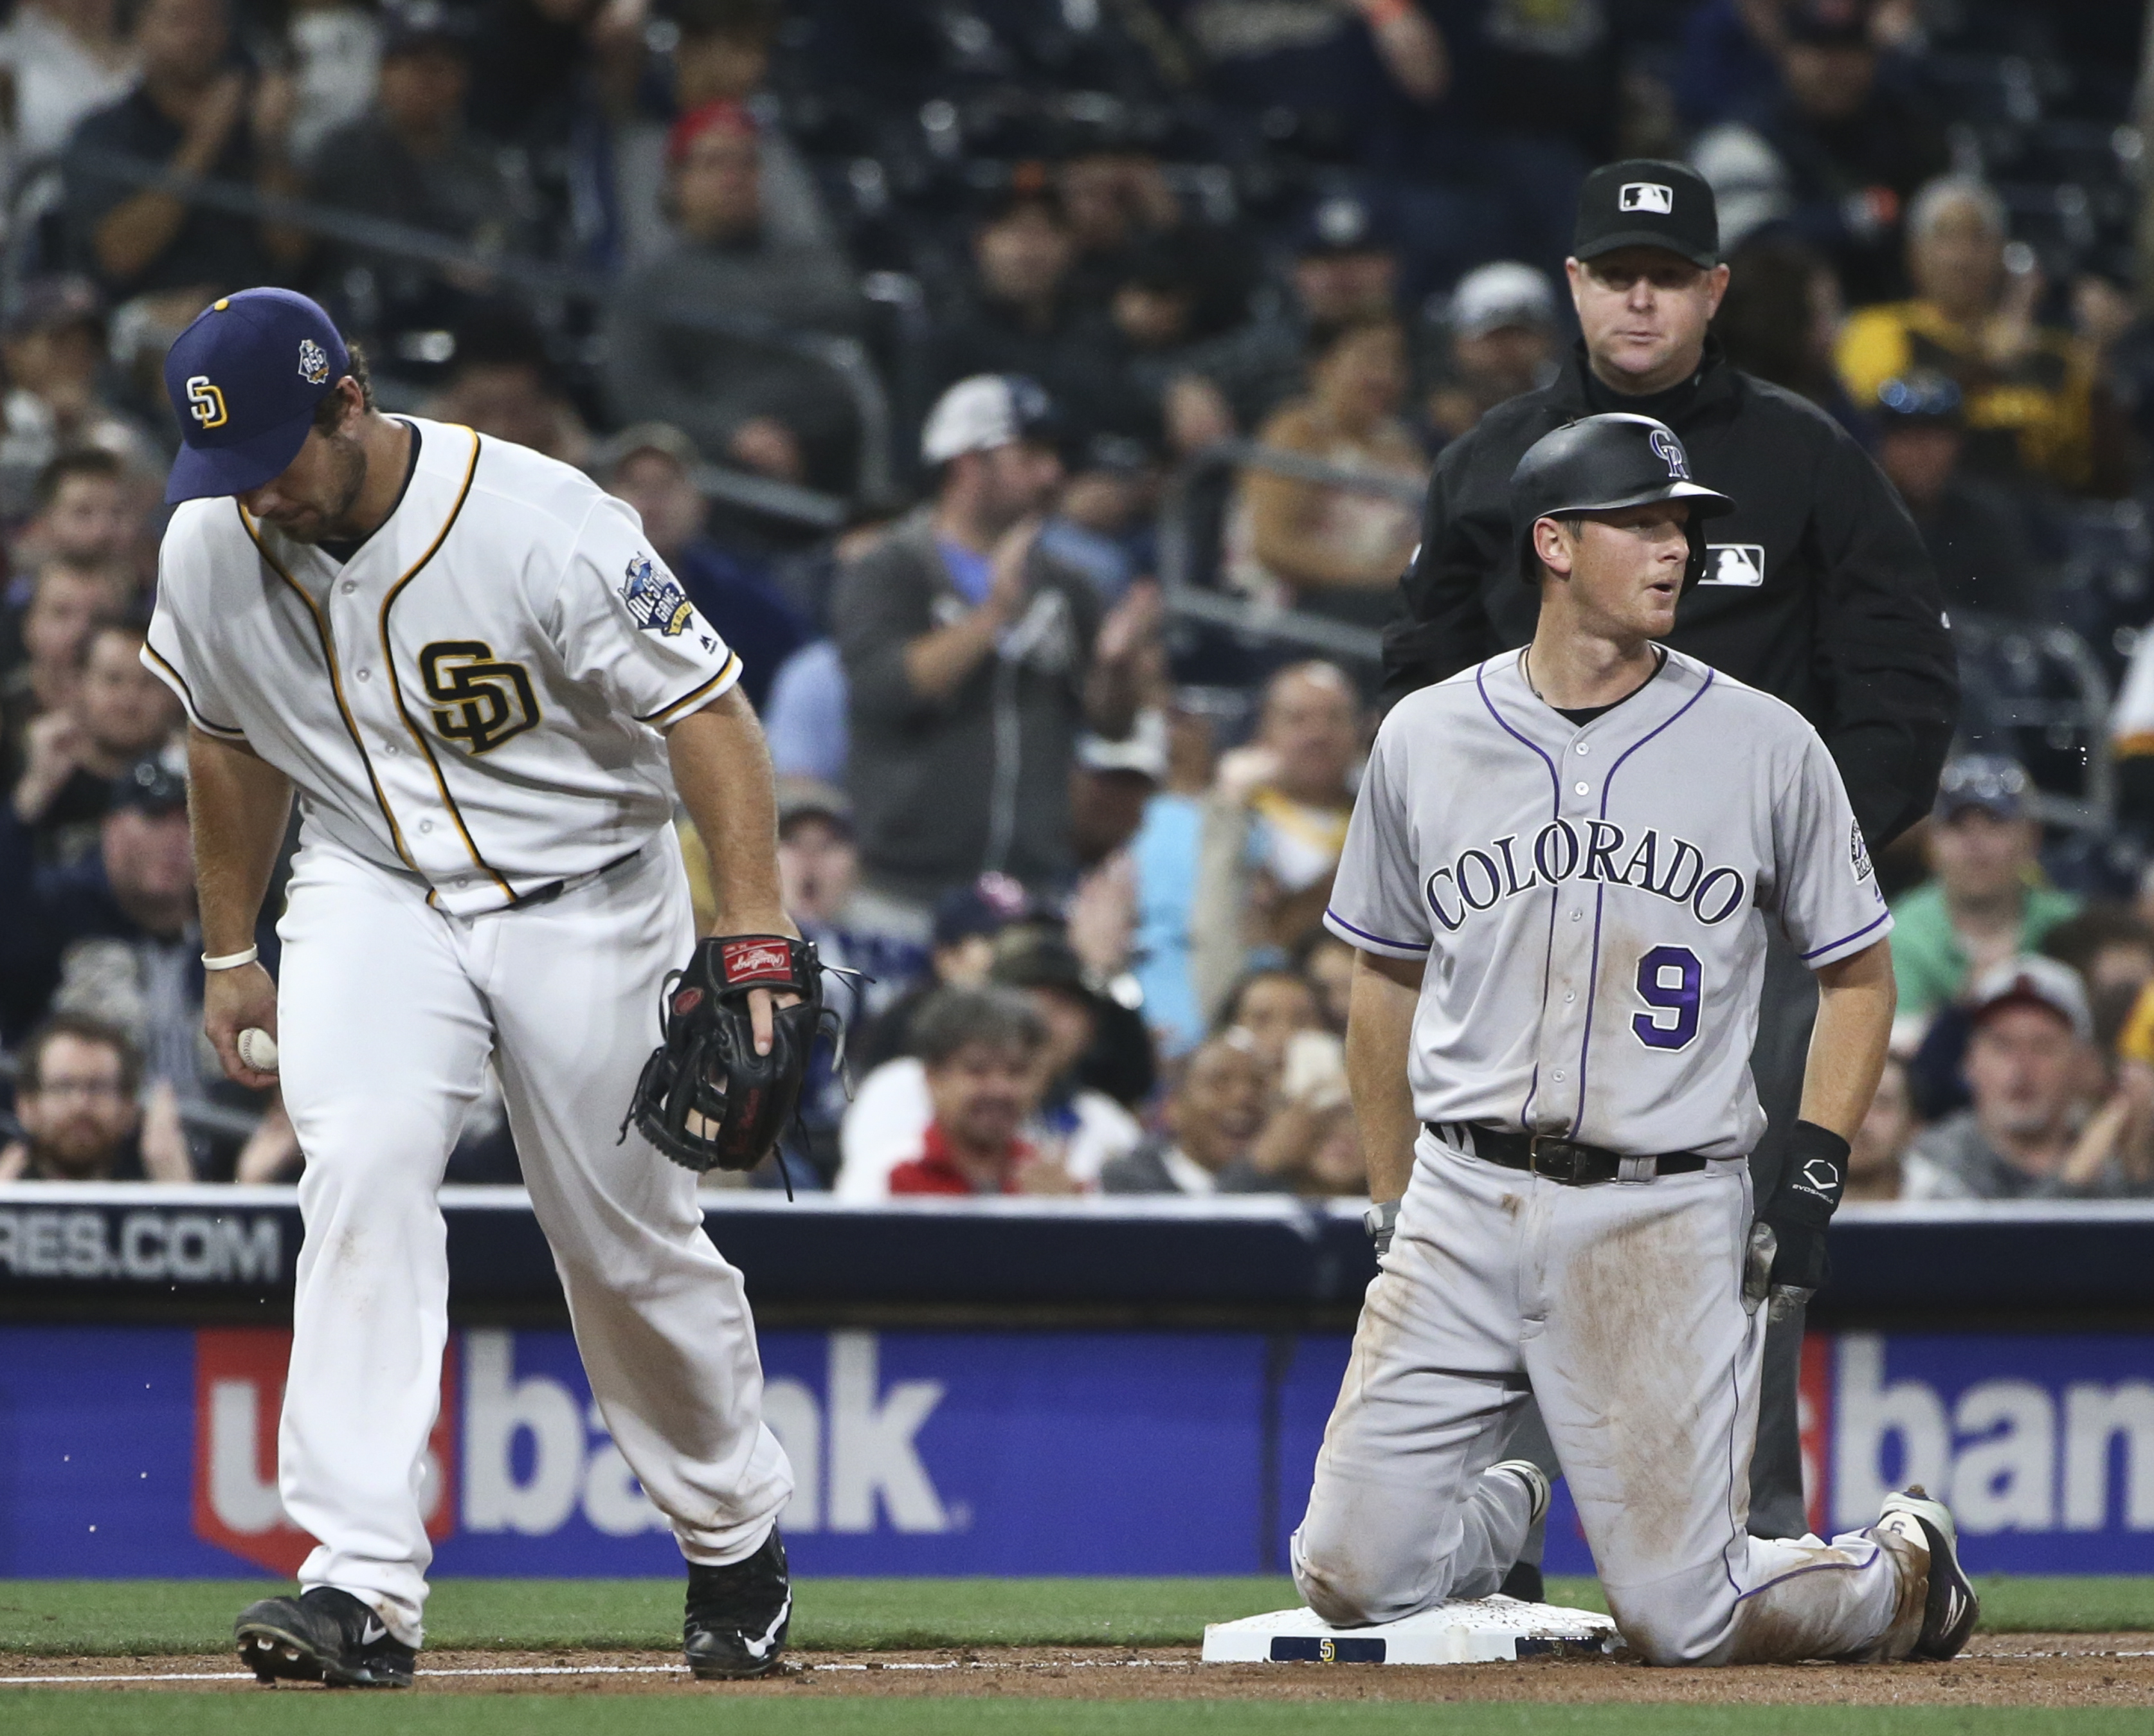 Colorado Rockies' DJ LeMahieu kneels at third base after being caught stealing with two out against the San Diego Padres in the fifth inning of a baseball game Monday, May 2, 2016, in San Diego. (AP Photo/Lenny Ignelzi)